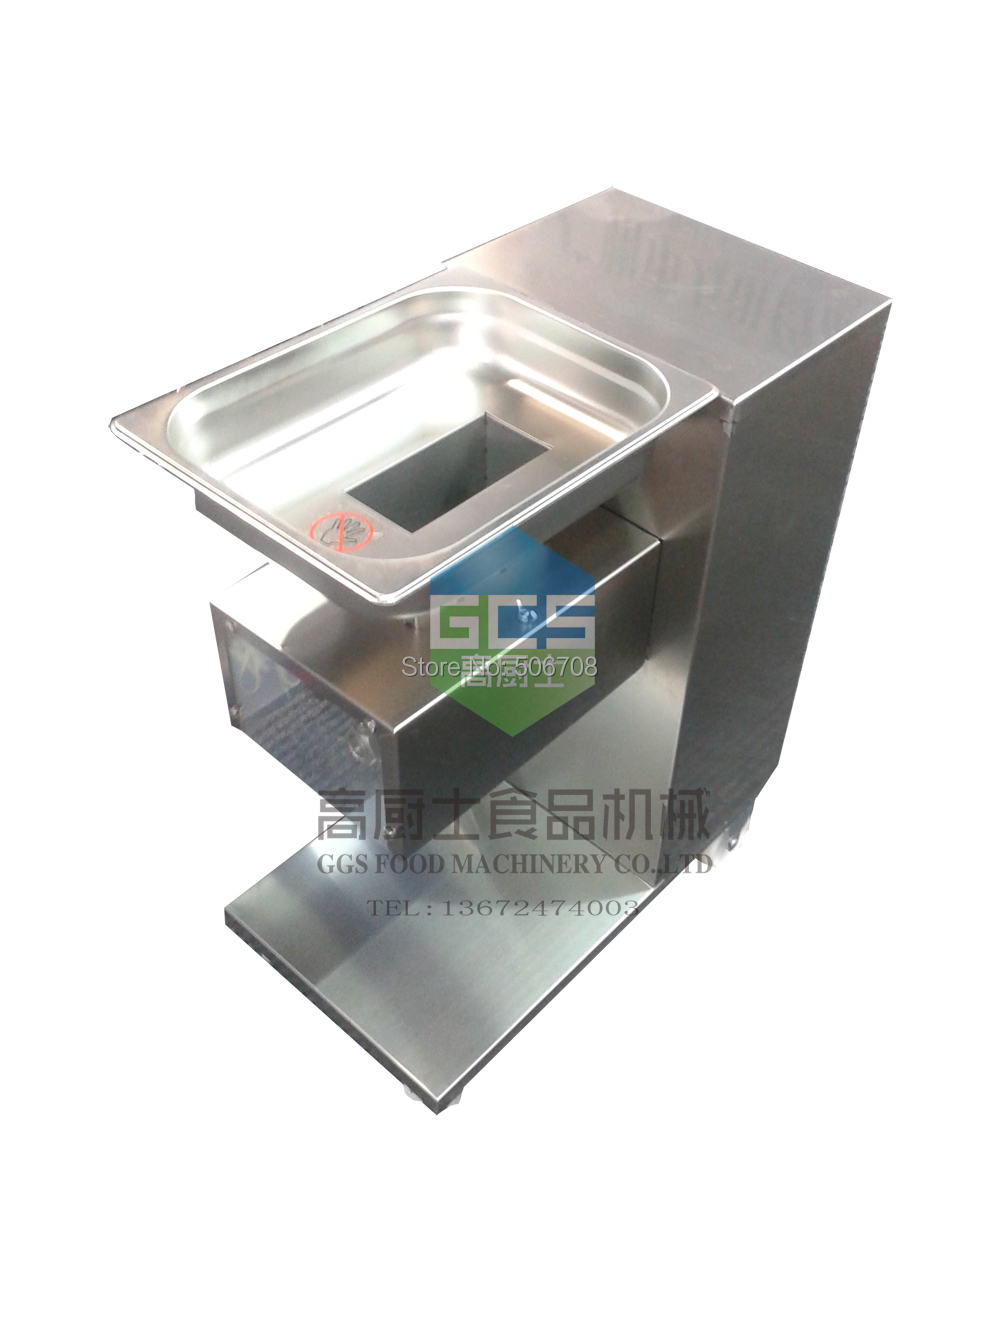 Buy Free shipping~220v / 110V QE Model Chicken meat slicer 500KG/Hour Meat Cutter Machine cheap